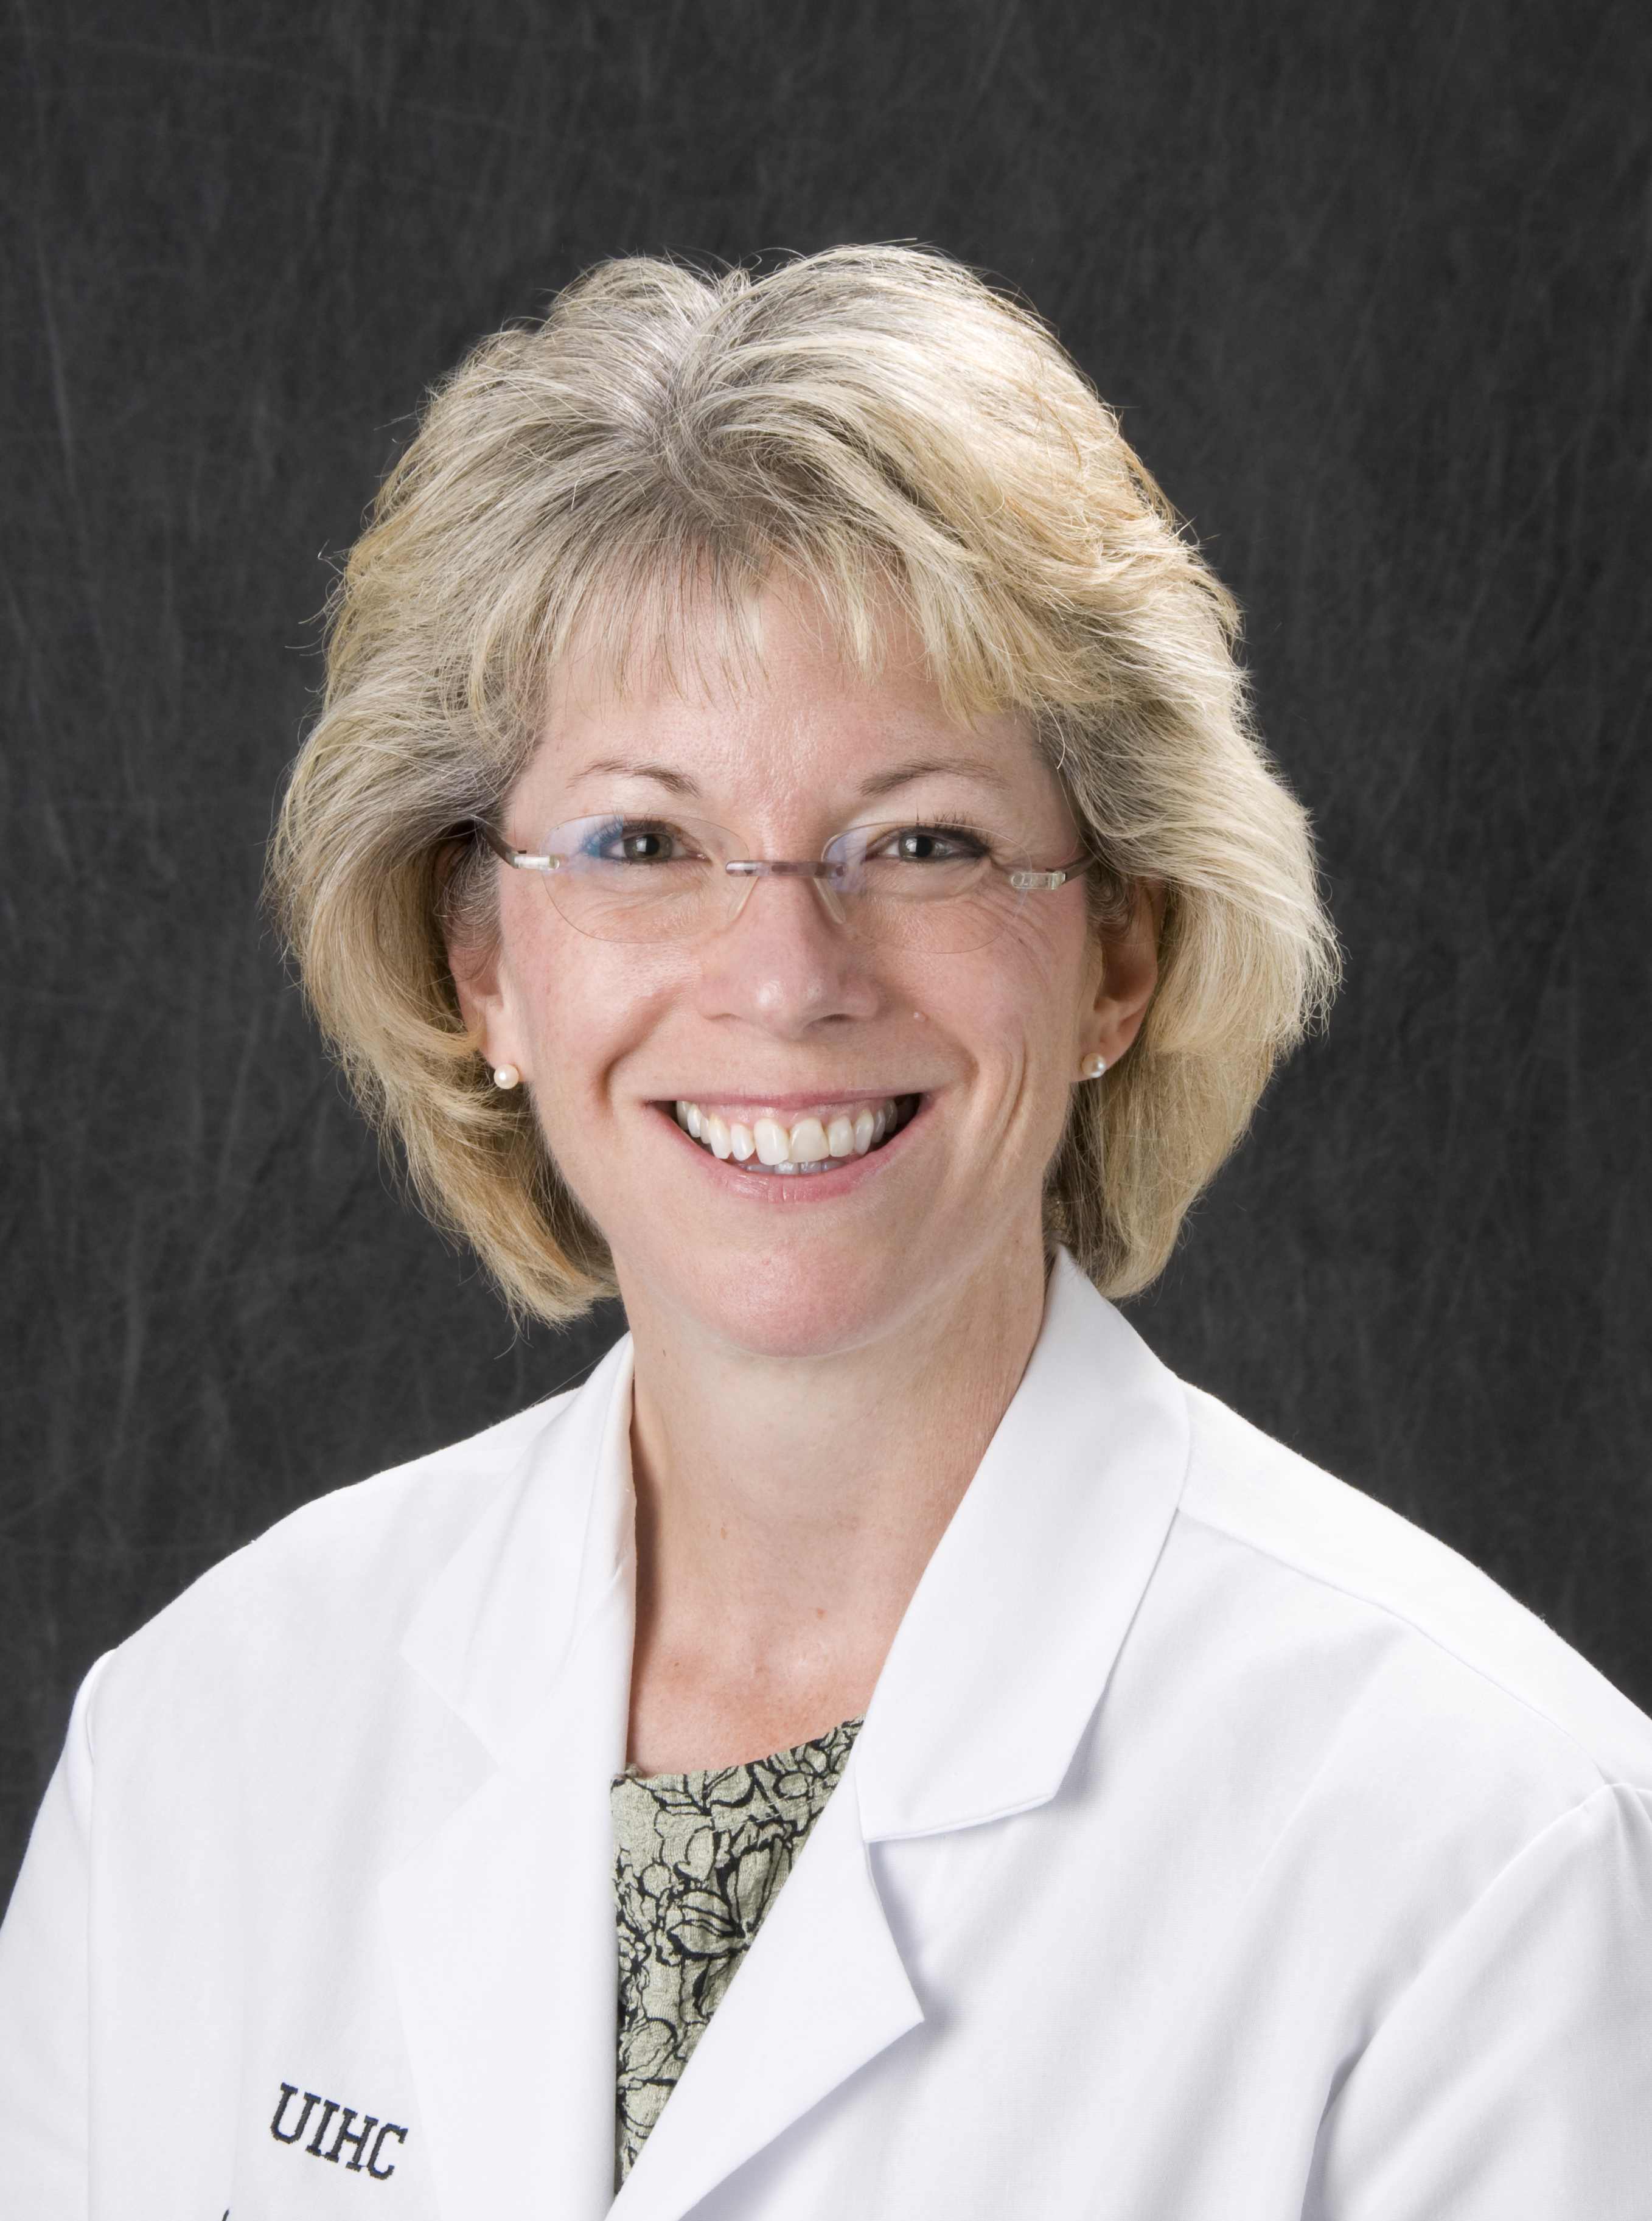 Colleen Stockdale, MD, MS